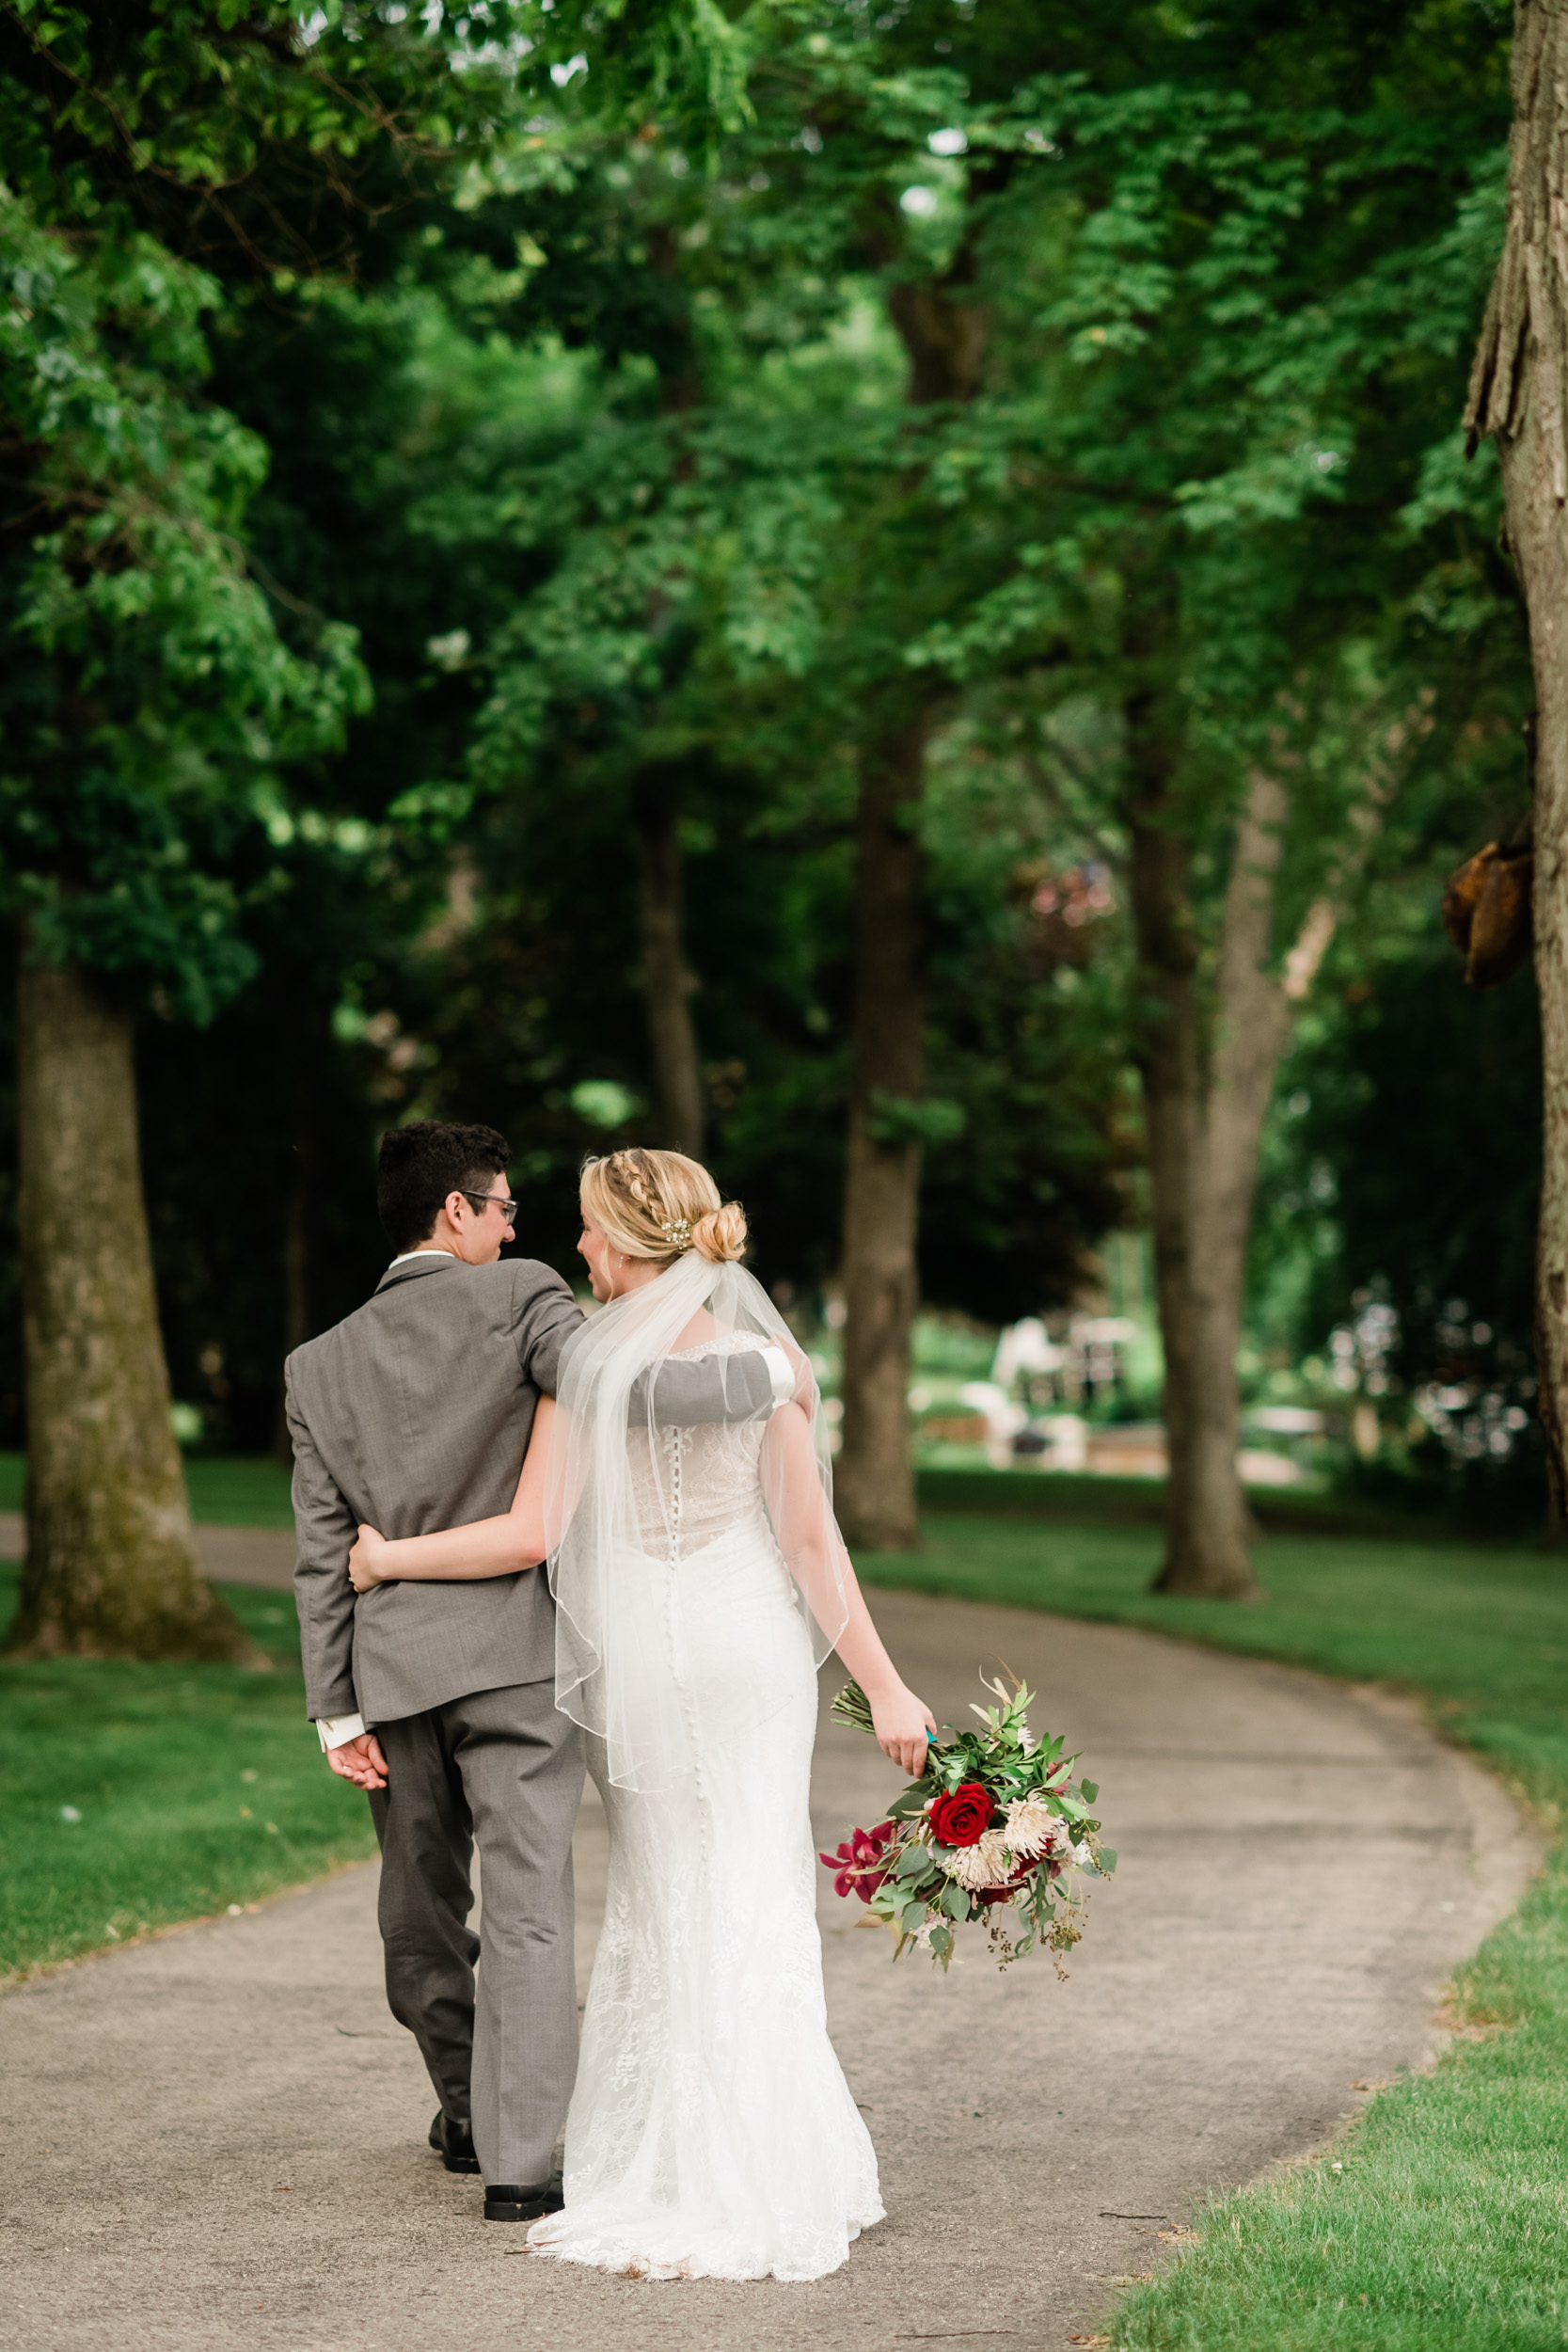 Bride and groom walking on a path